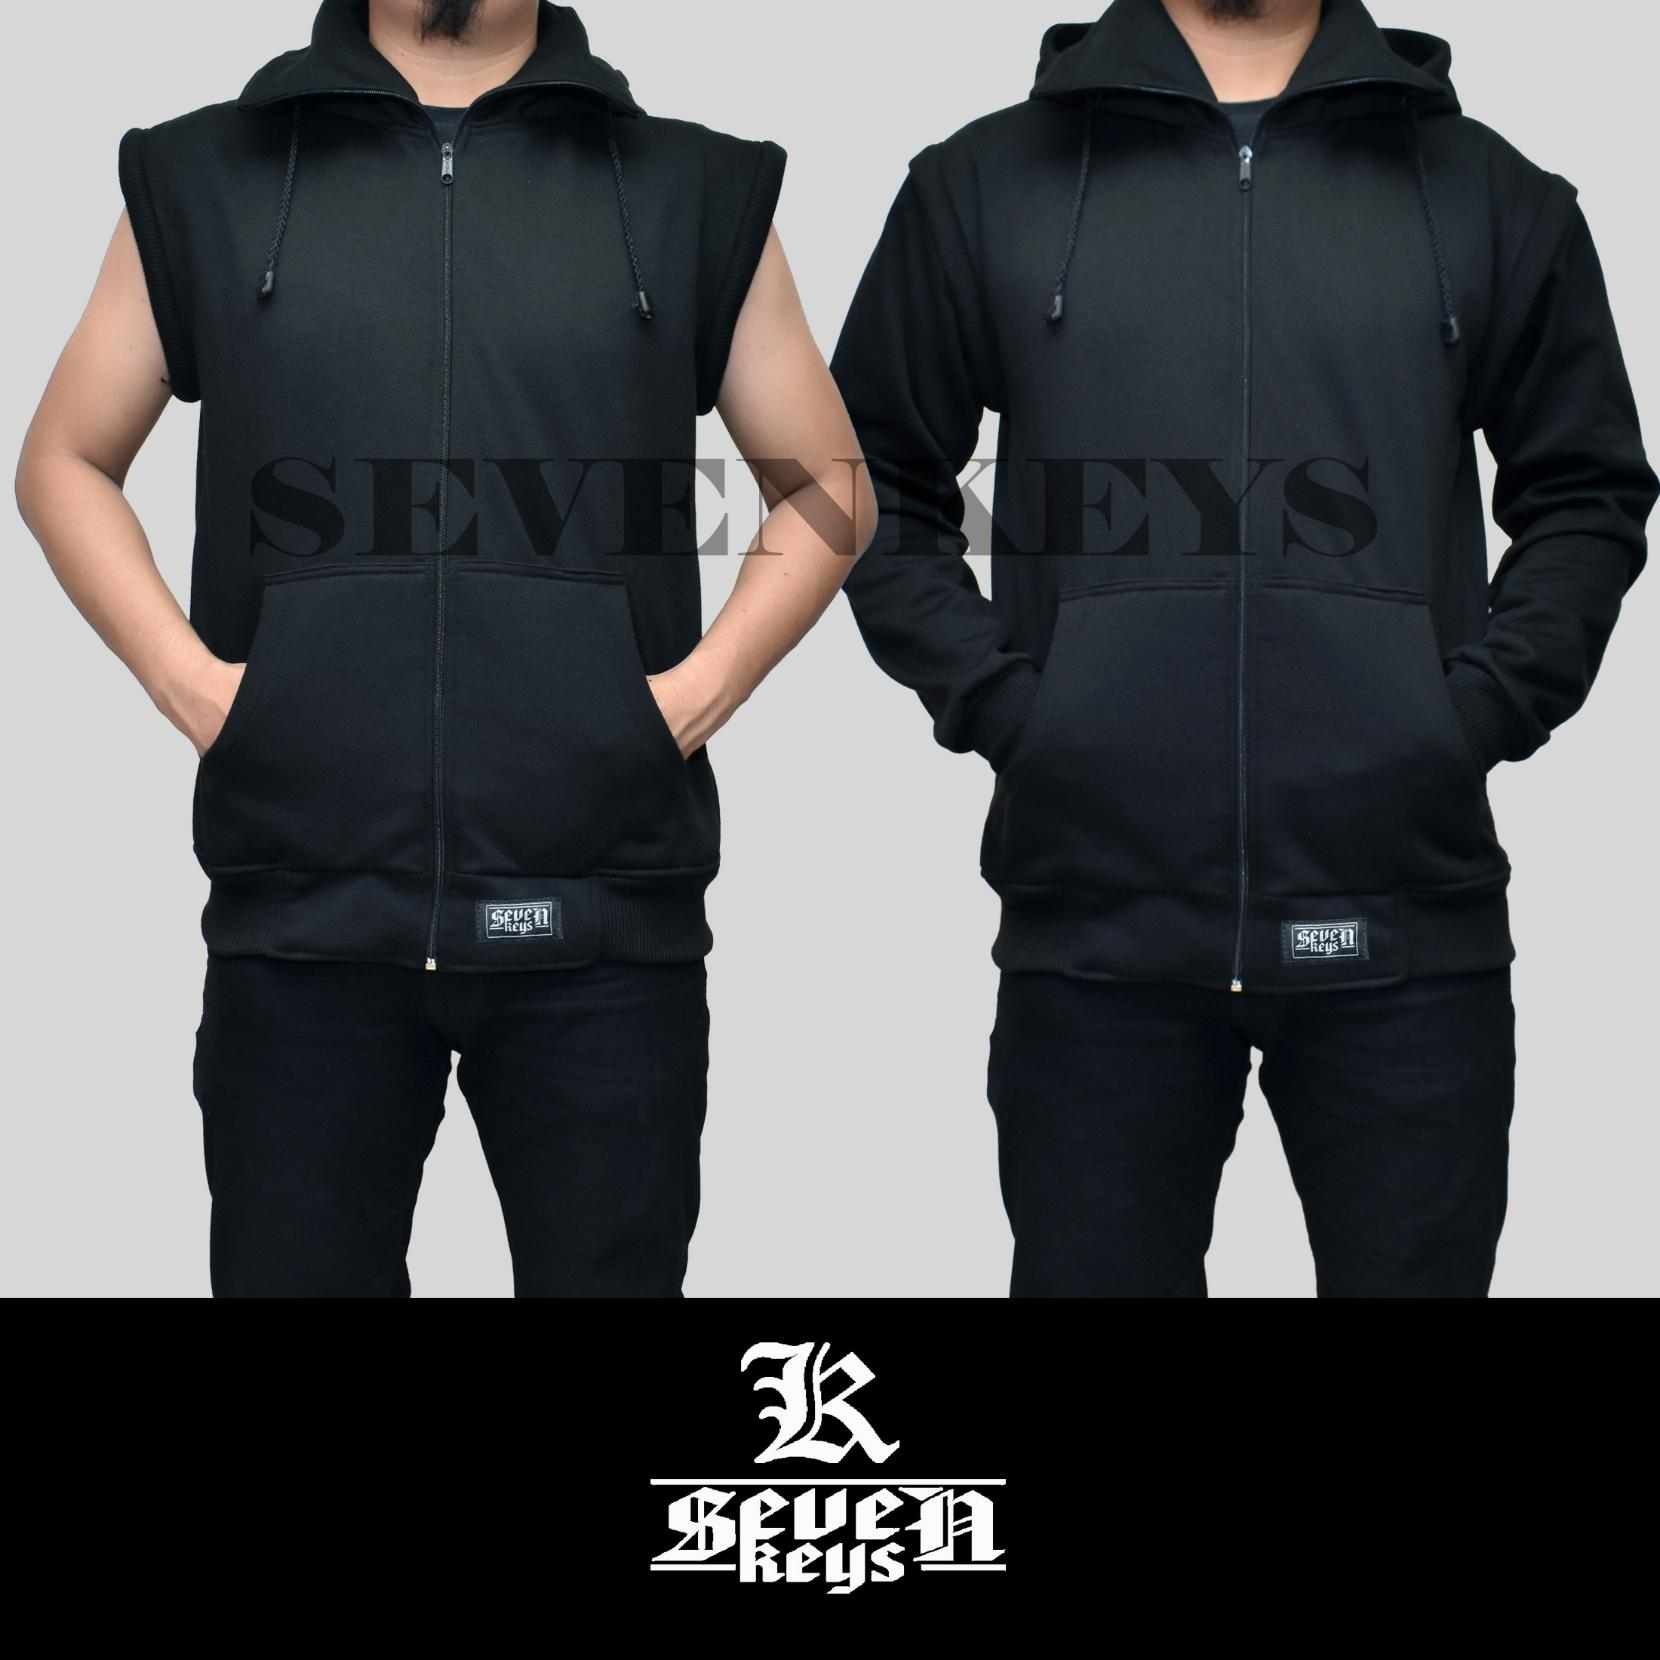 Jaket Sweater Ninja Pria - Theme Park Pro 4k Wallpapers 813fdc5a59